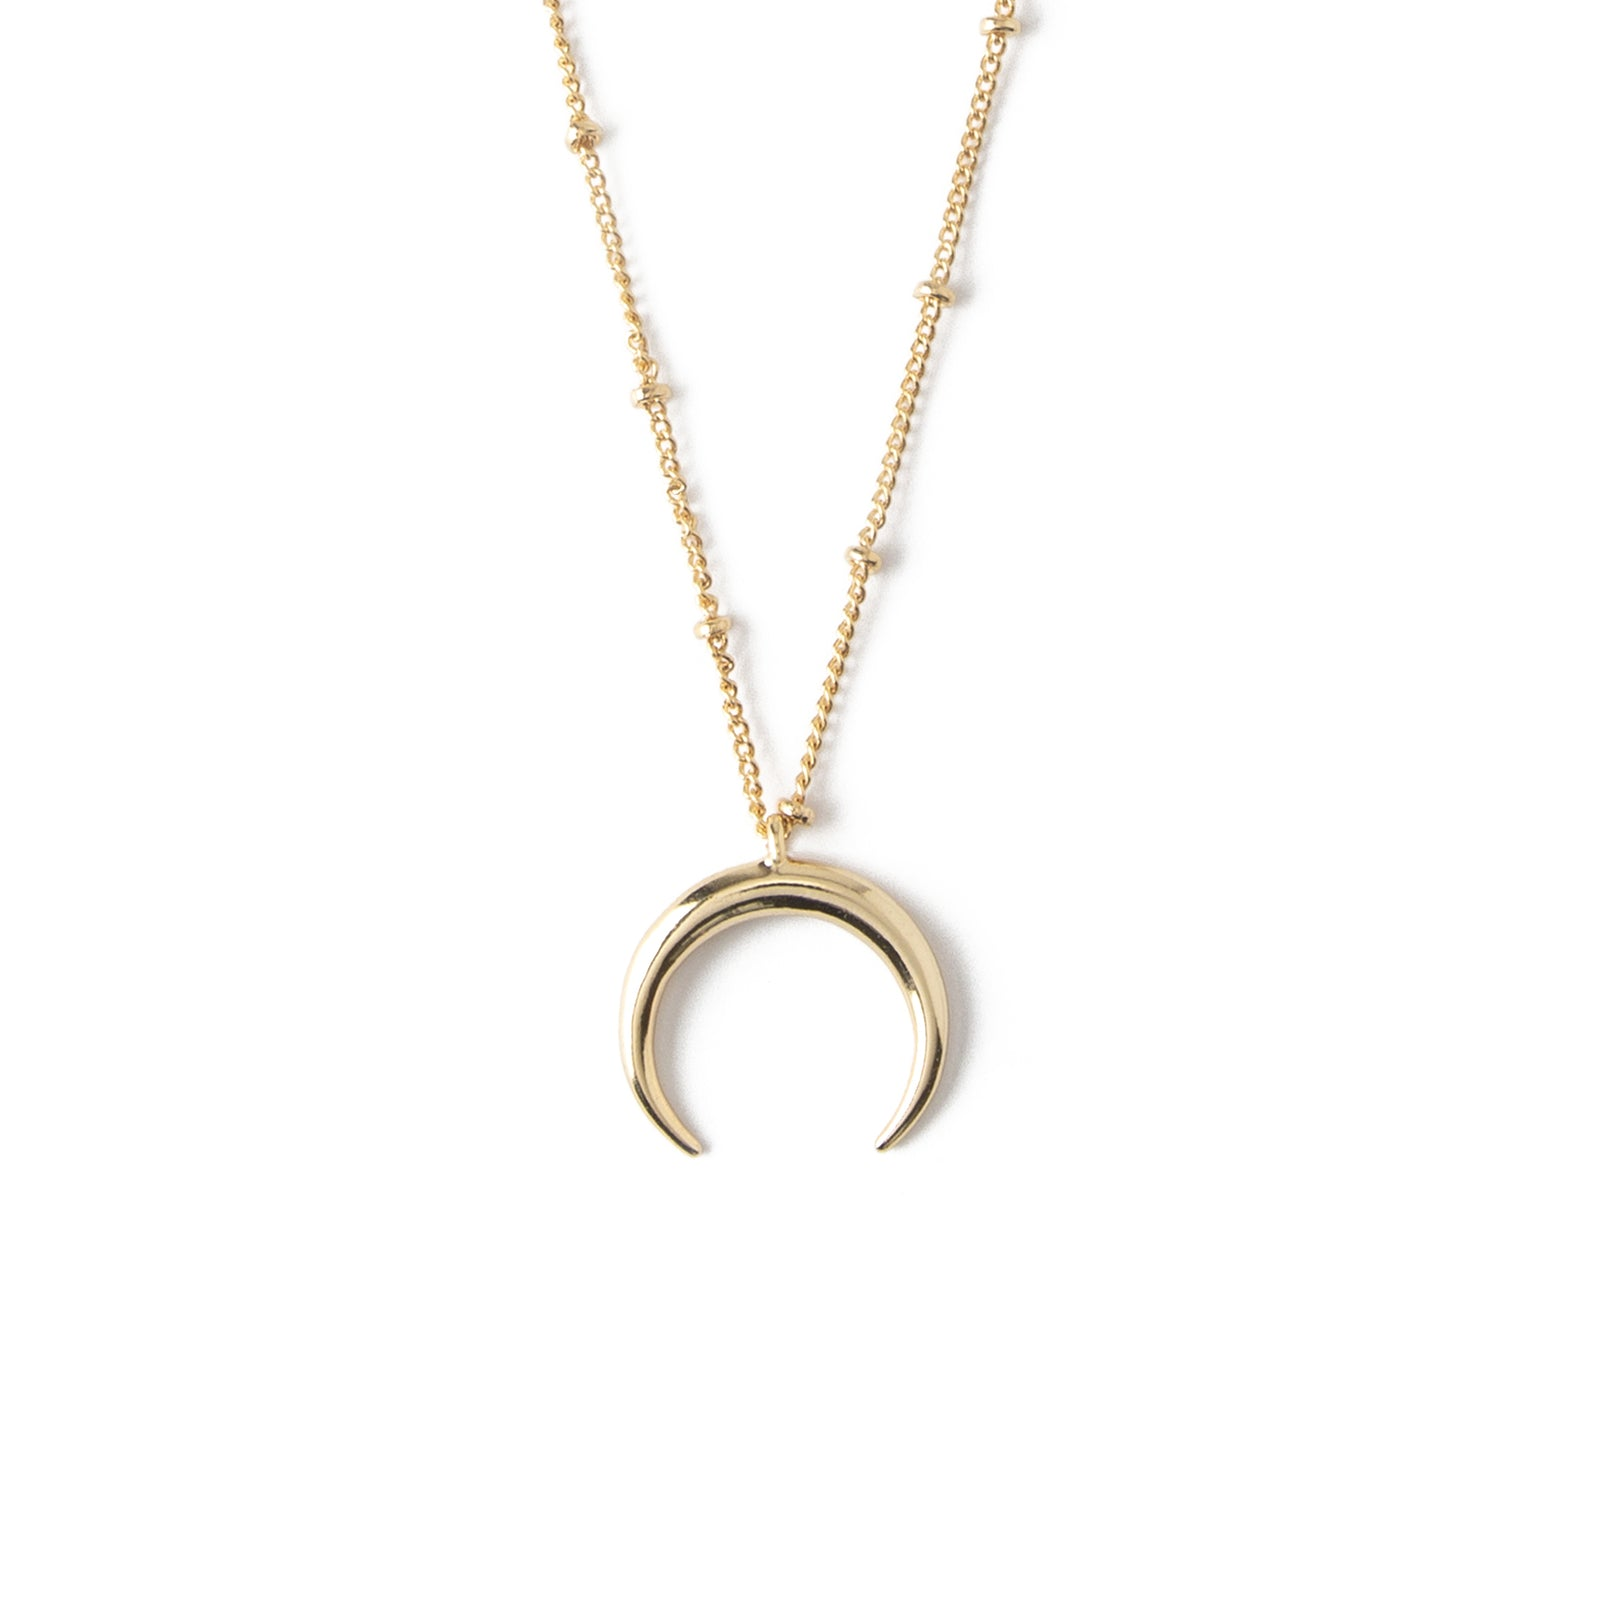 409b2ad51e2c7 LUXE Crescent Charm Necklace - Gold